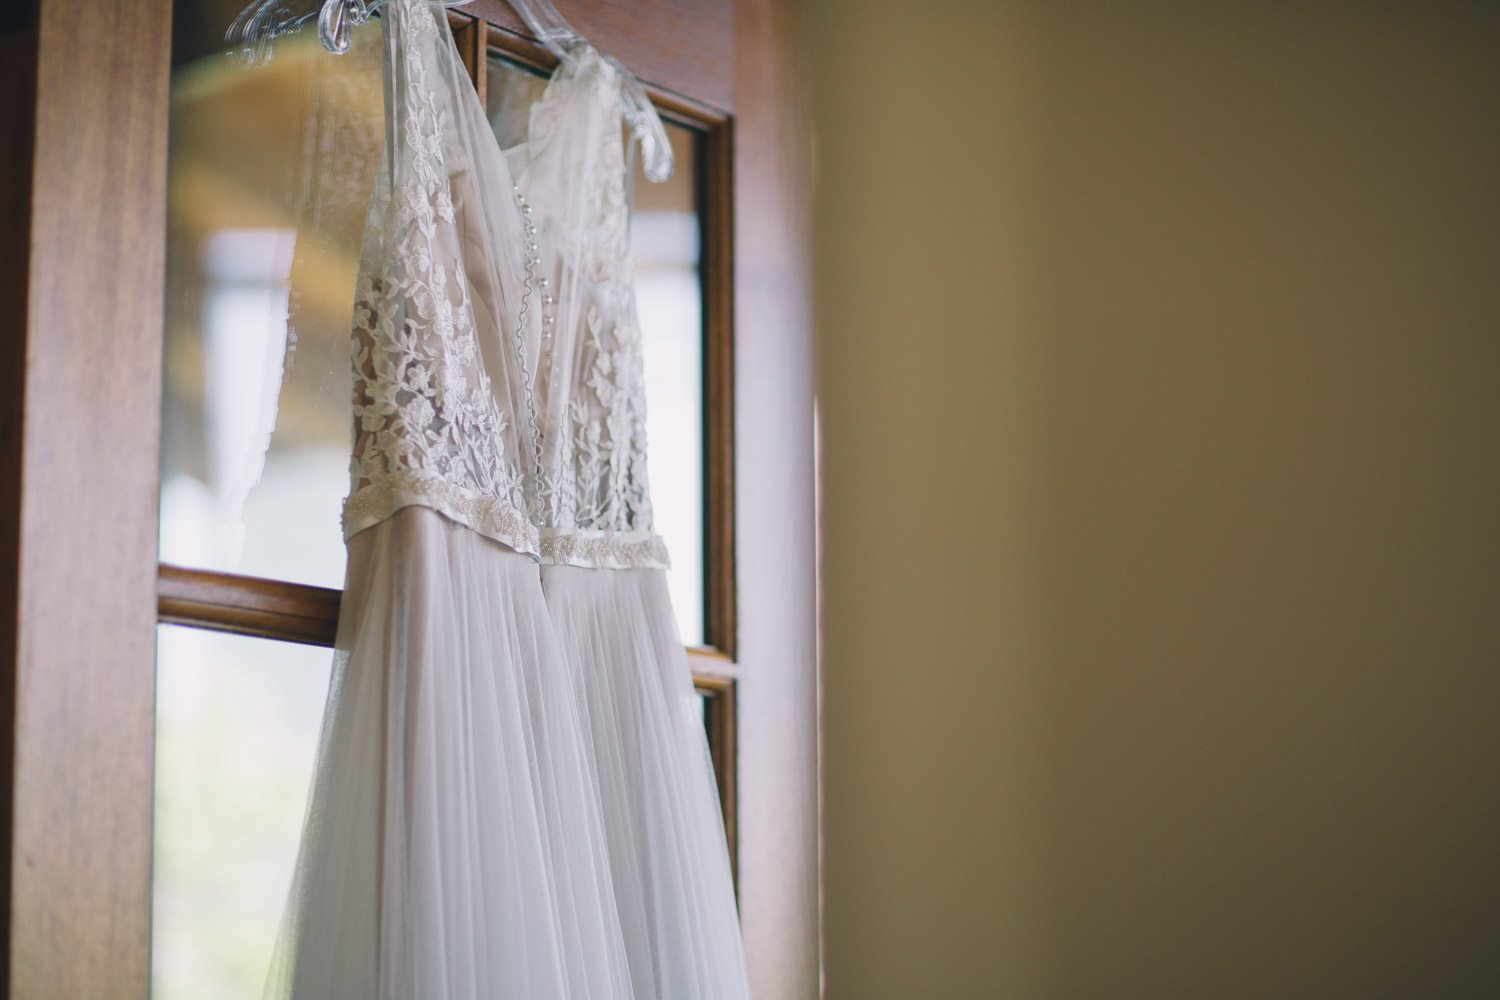 white-lace-wedding-dress-hanging